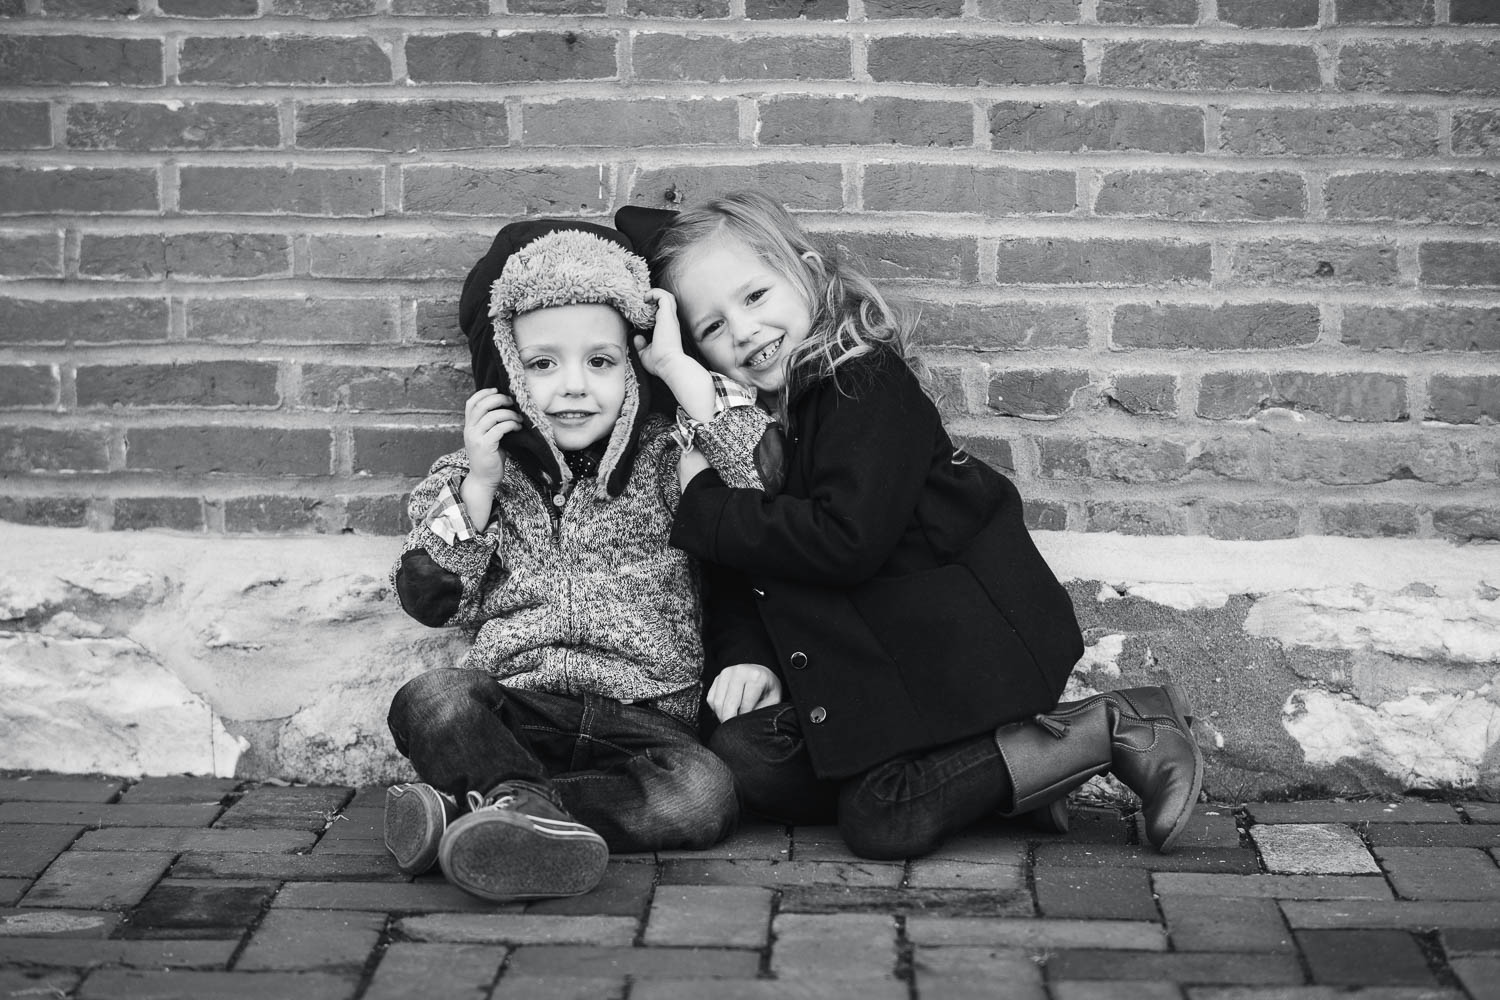 Children pose during their family photography session in St. Charles, Missouri.